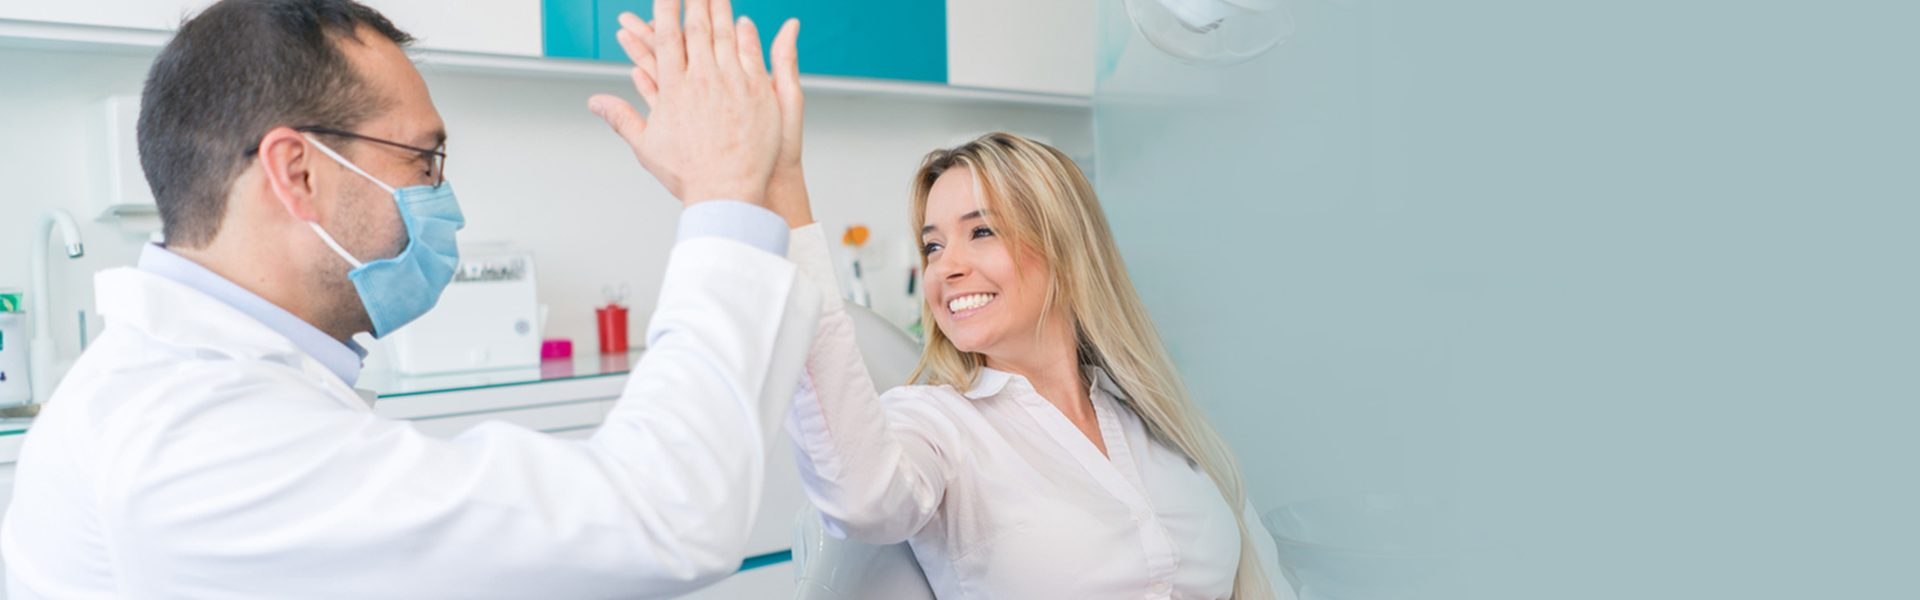 Top 10 Facts Your Dentist Wants You to Know